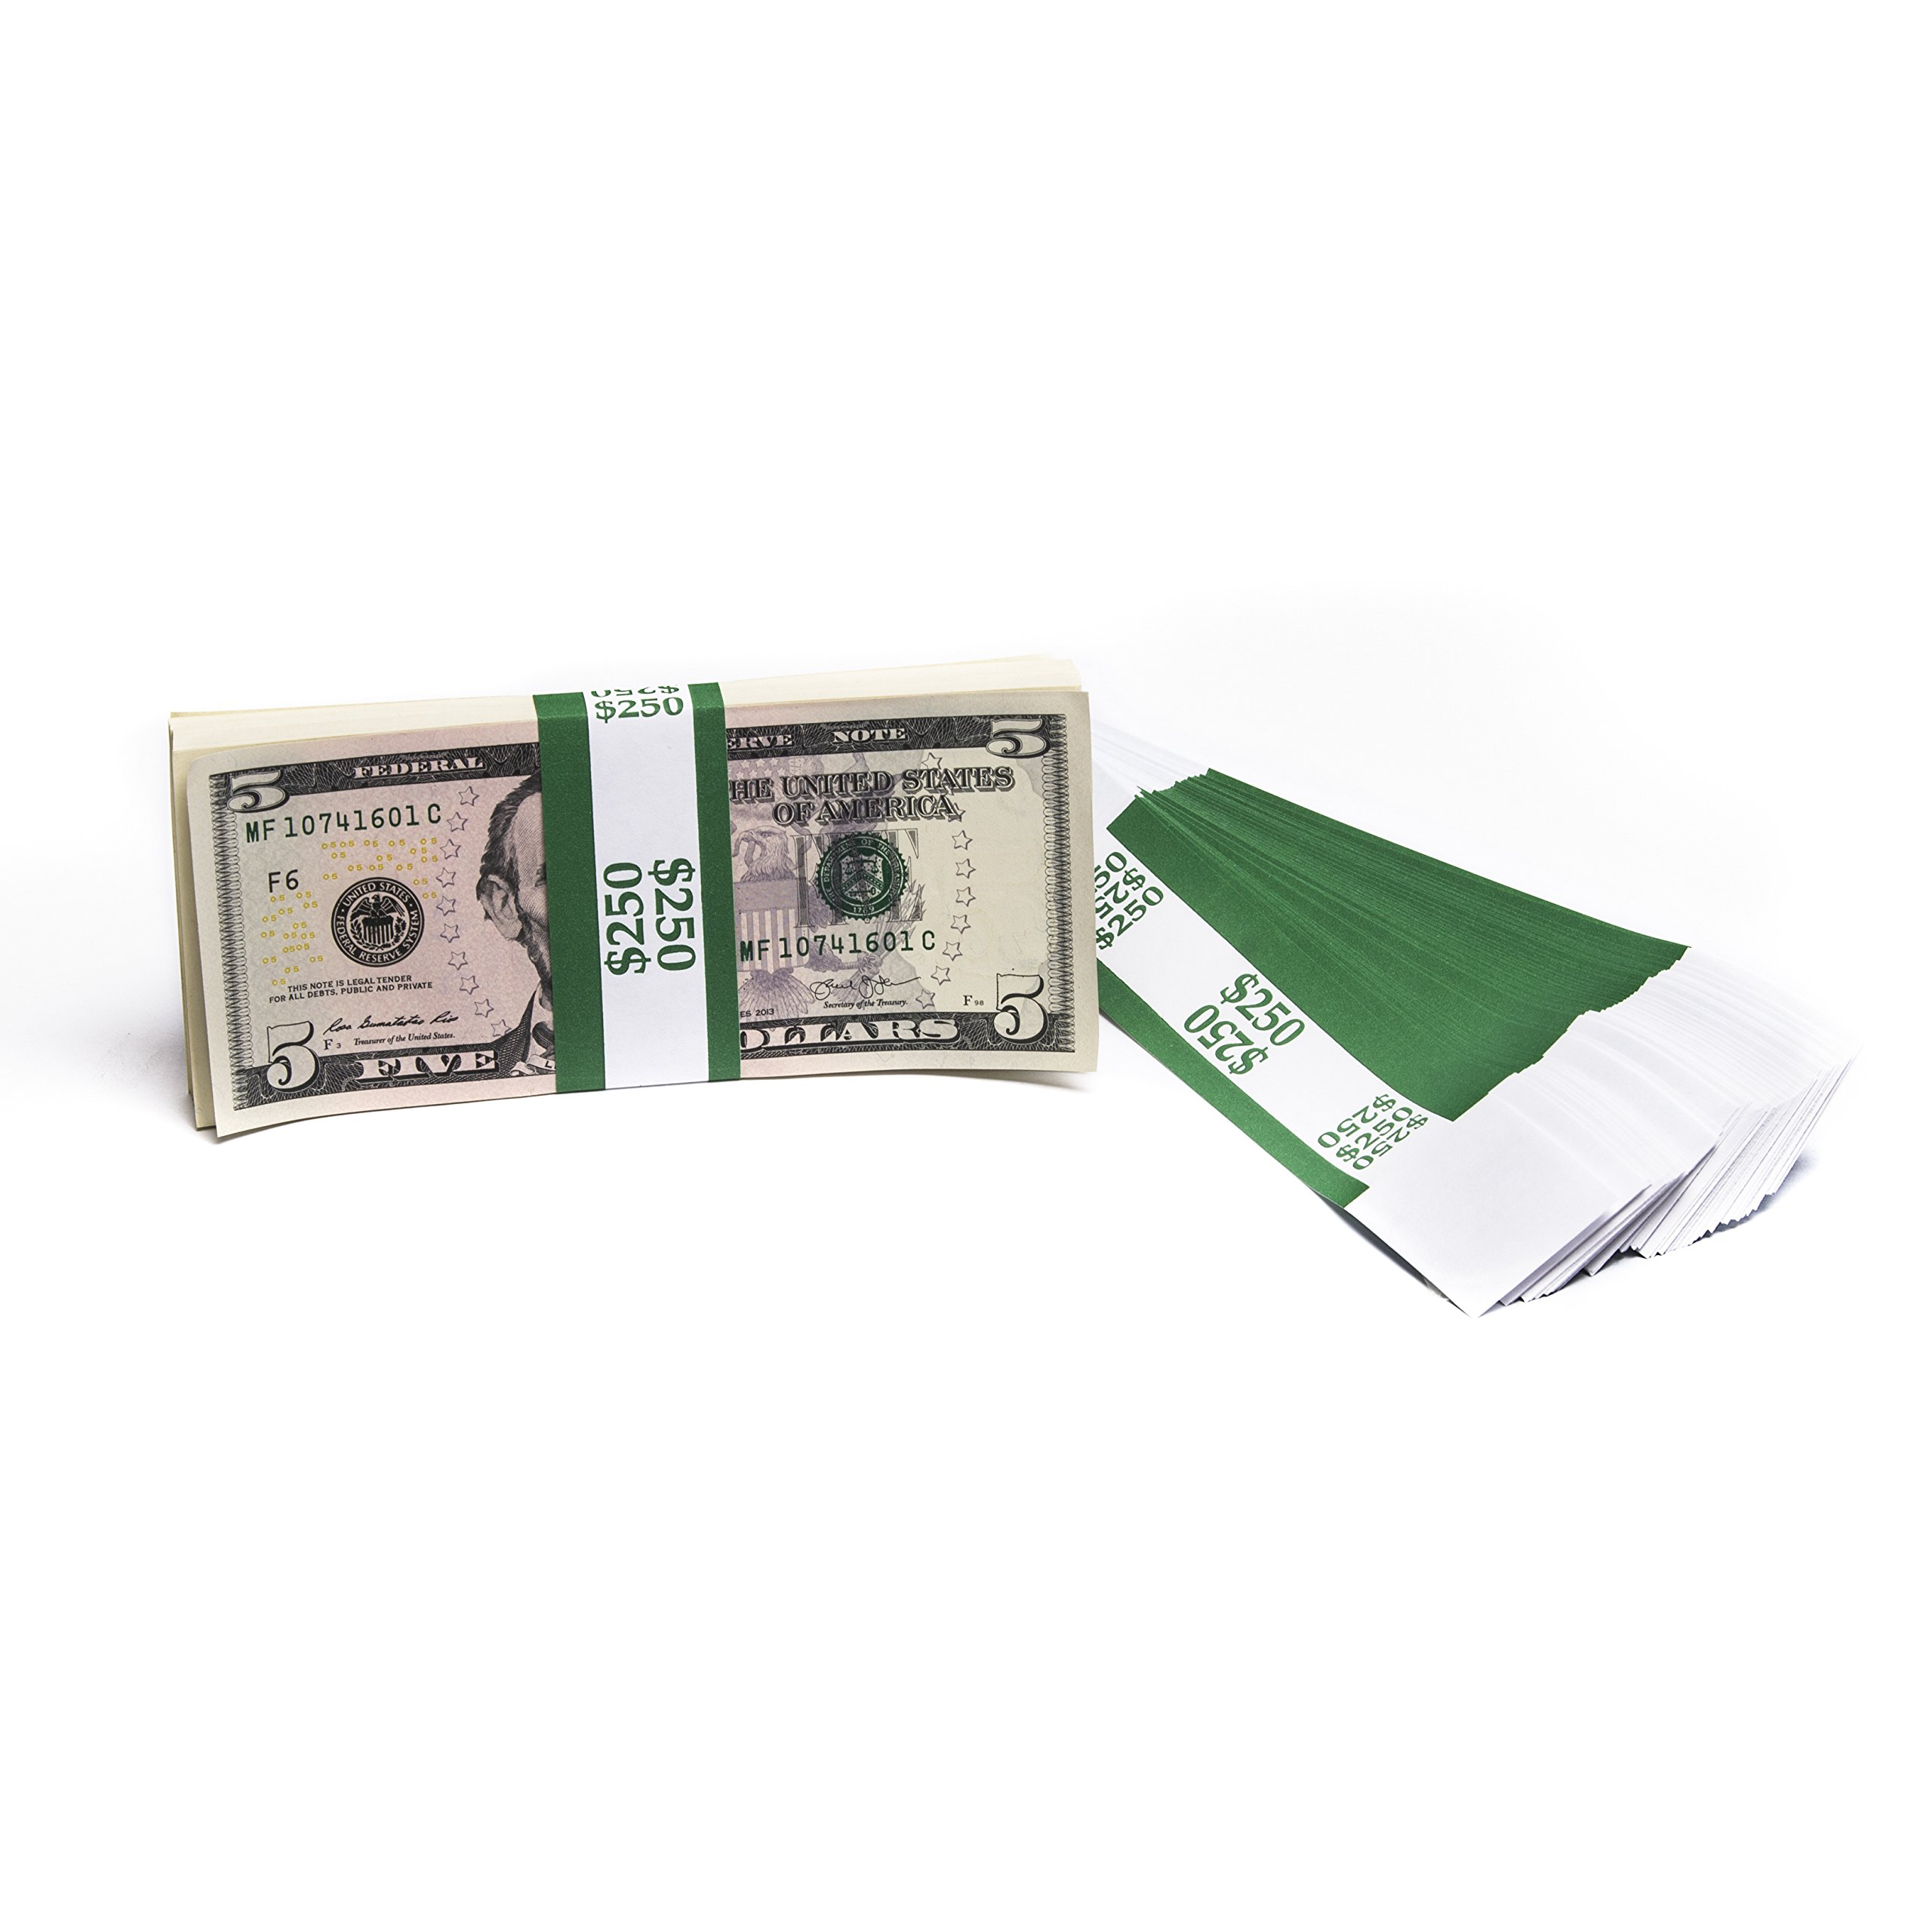 Barred ABA $250 Currency Band Bundles (1,000 Bands)